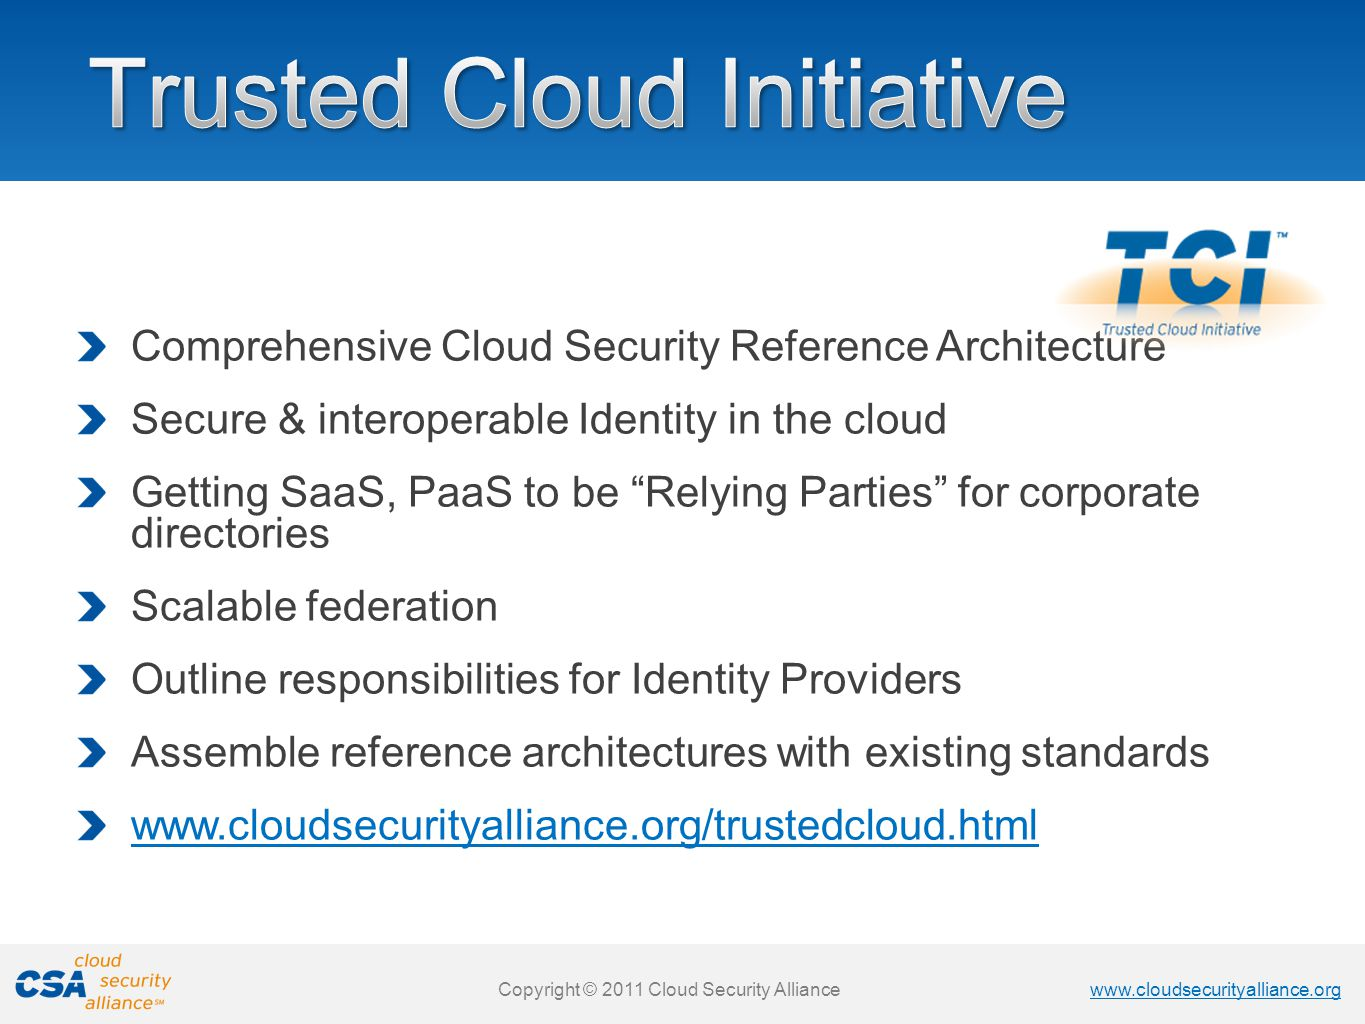 www.cloudsecurityalliance.org Copyright © 2011 Cloud Security Alliance www.cloudsecurityalliance.org Copyright © 2011 Cloud Security Alliance Comprehensive Cloud Security Reference Architecture Secure & interoperable Identity in the cloud Getting SaaS, PaaS to be Relying Parties for corporate directories Scalable federation Outline responsibilities for Identity Providers Assemble reference architectures with existing standards www.cloudsecurityalliance.org/trustedcloud.html